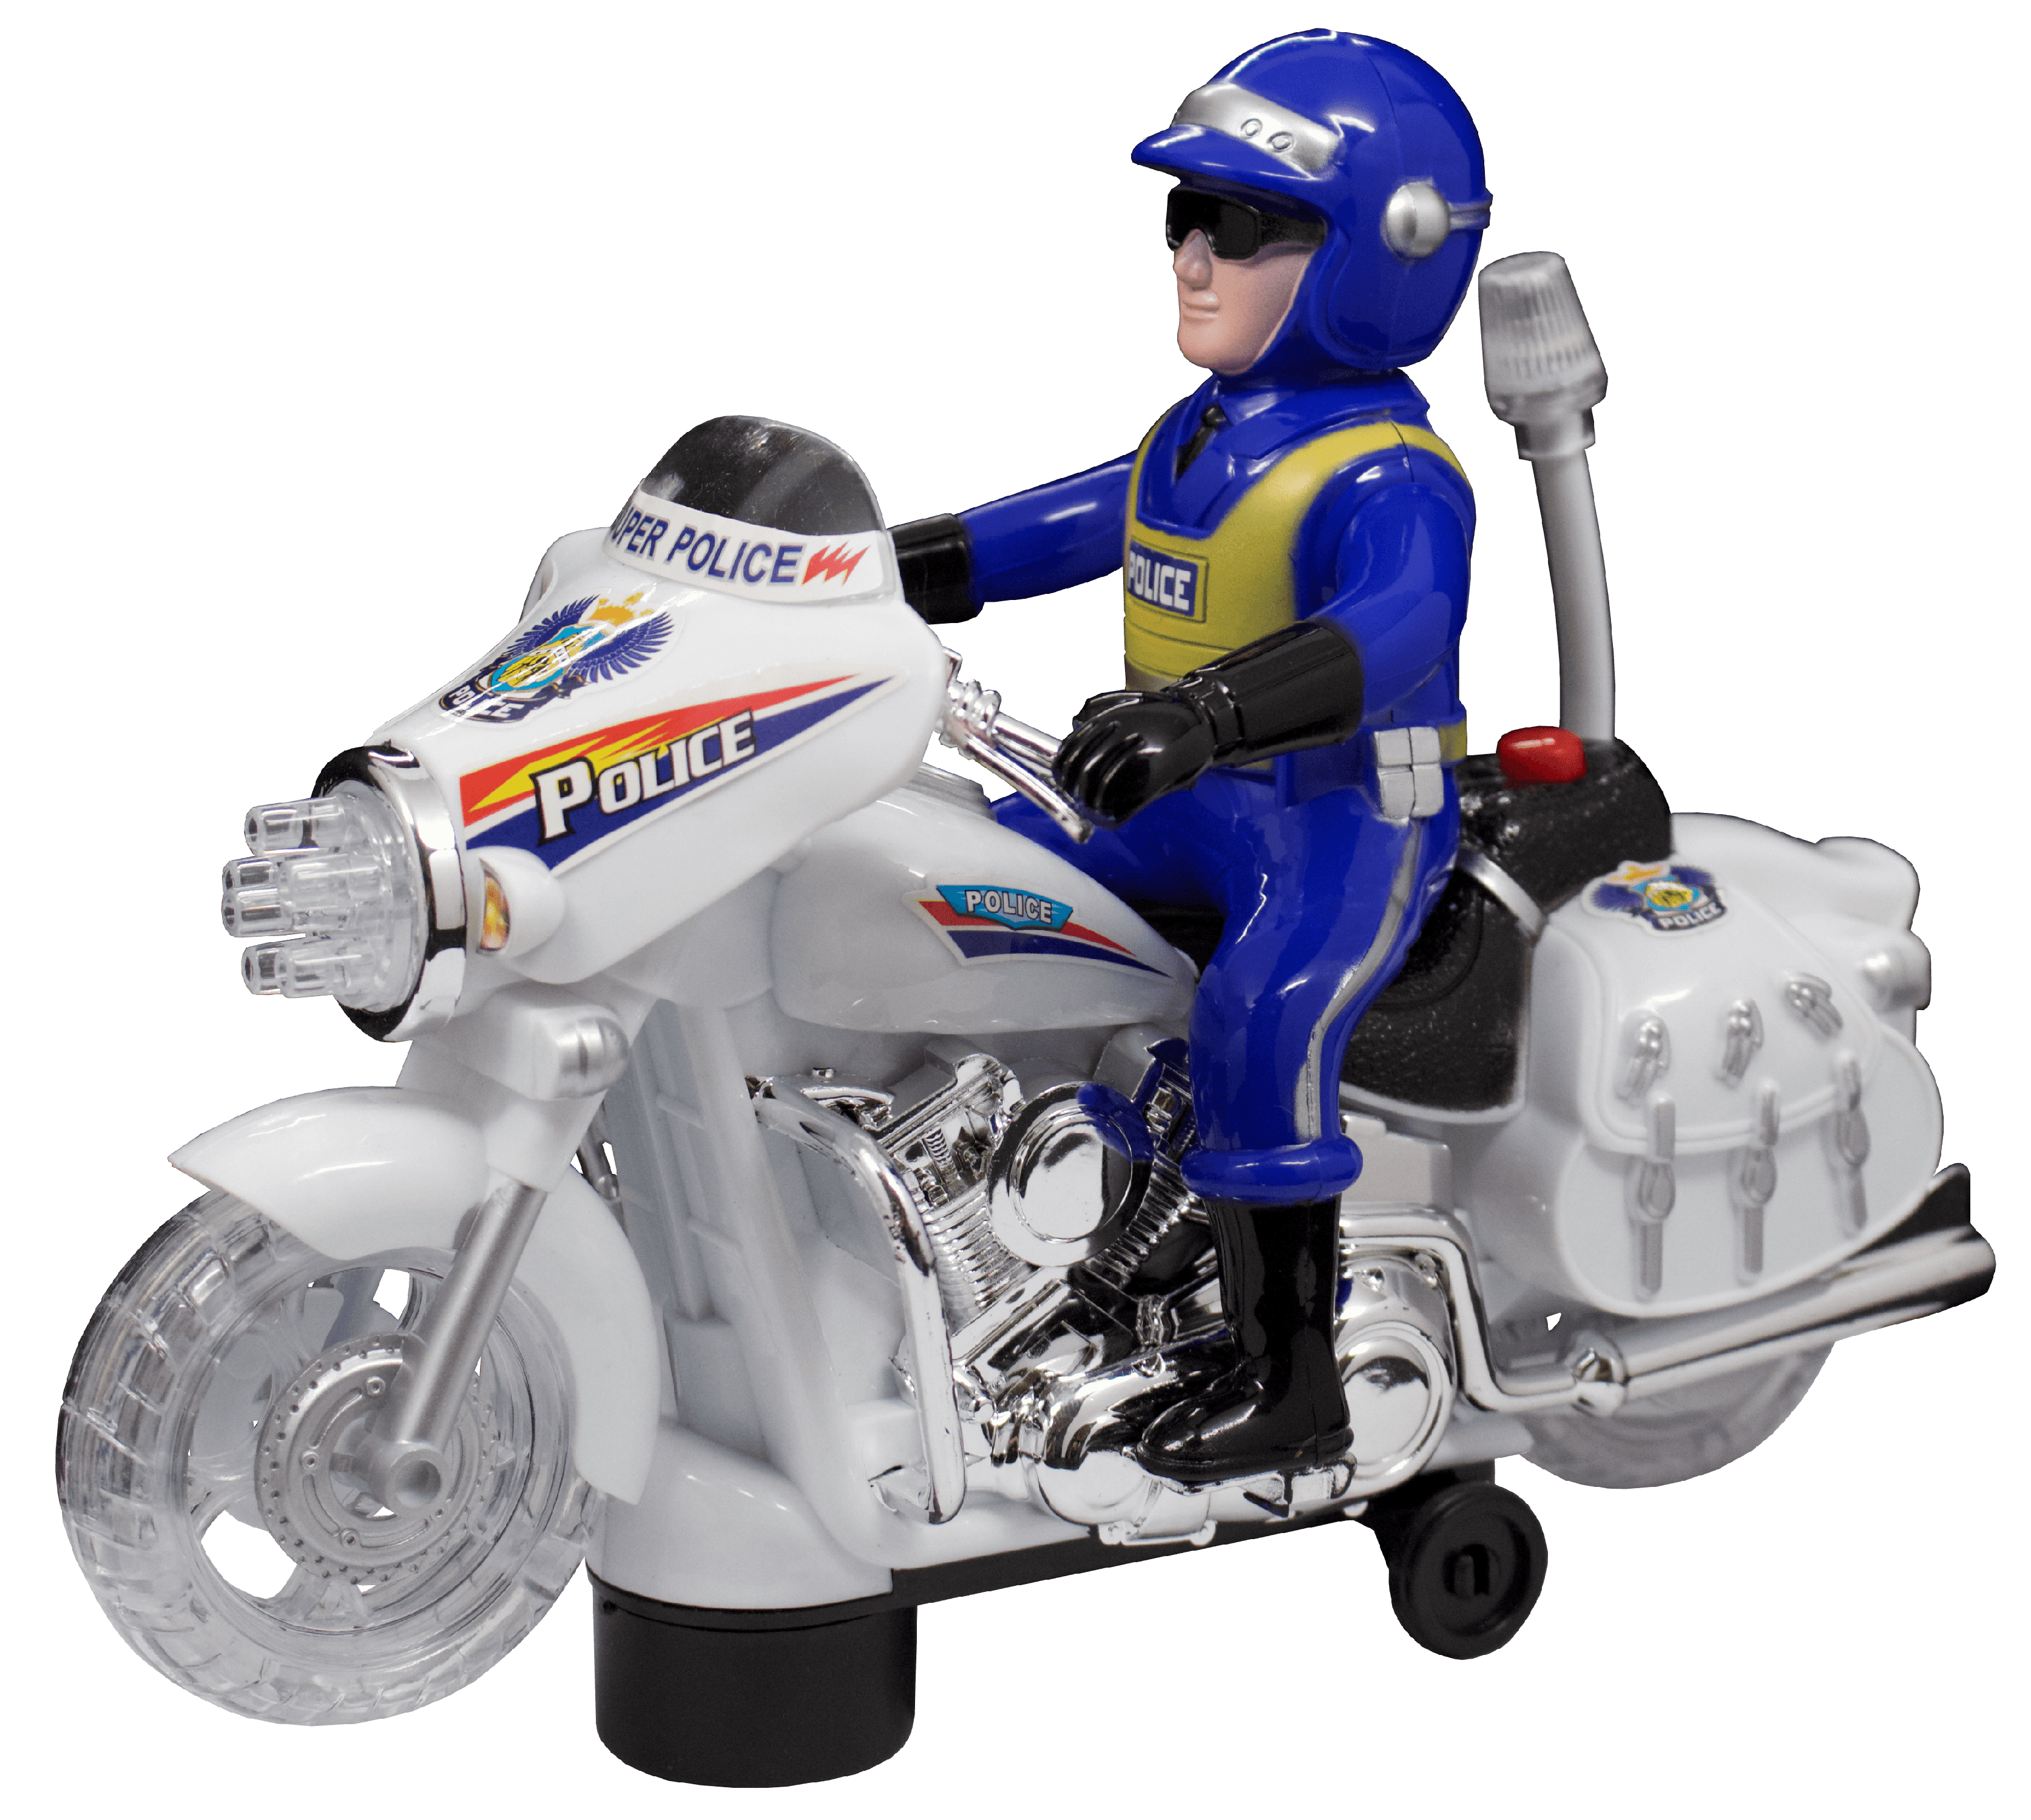 Techege Toys Police Motorcycle Ride On For Boys Or Toddlers Kids With Lights Sounds Fun Walmart Com Walmart Com